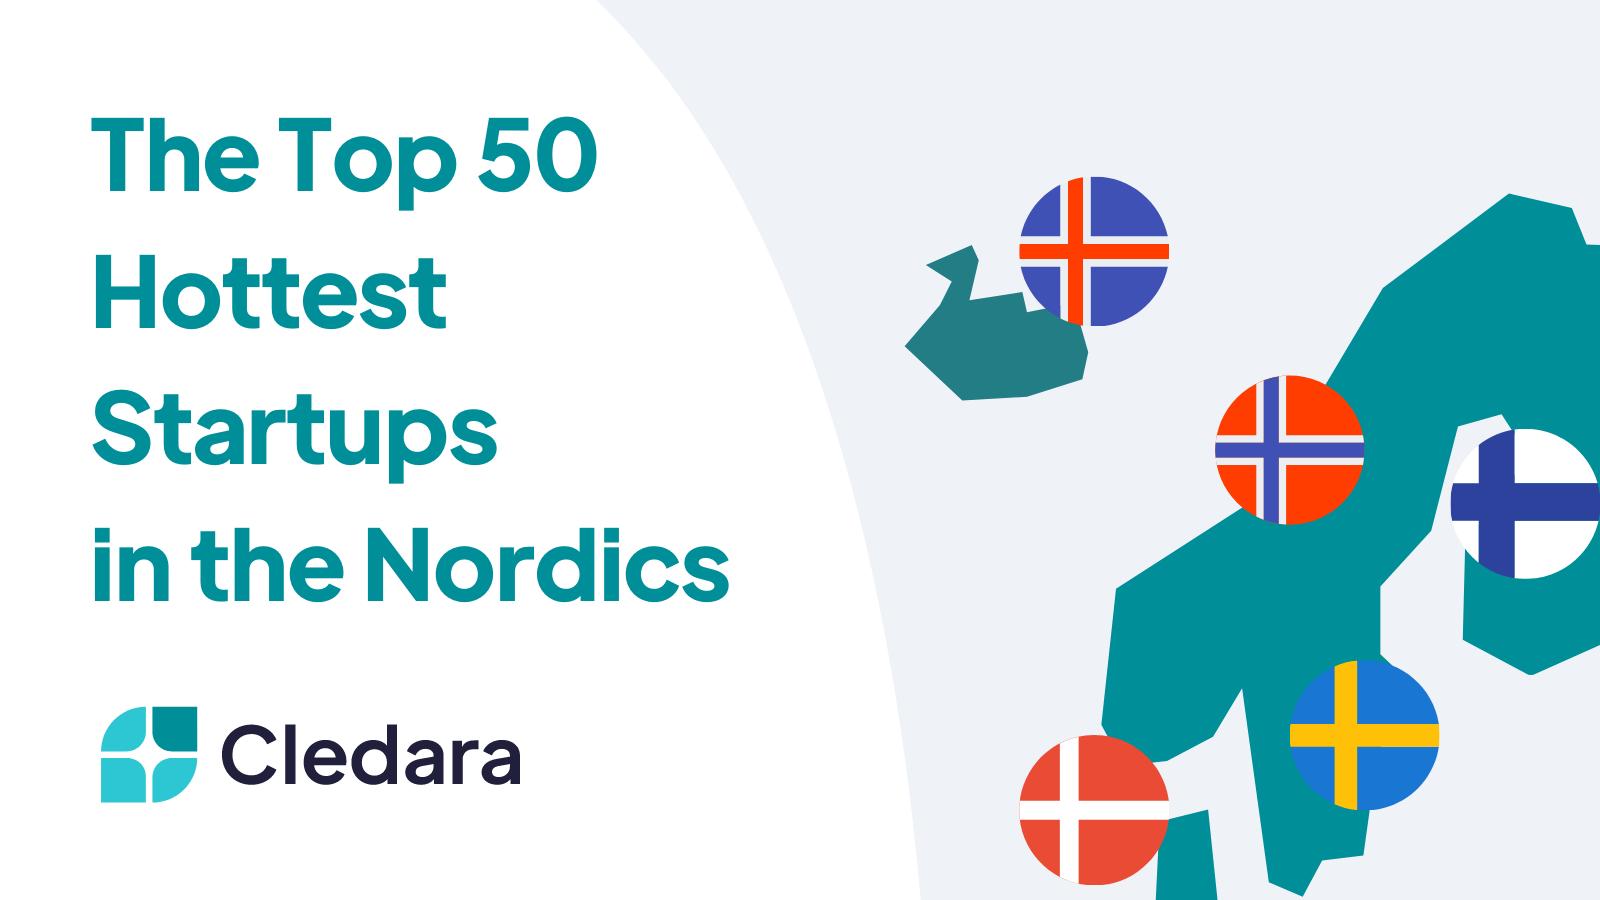 The Top 50 Hottest Startups in the Nordics in 2021